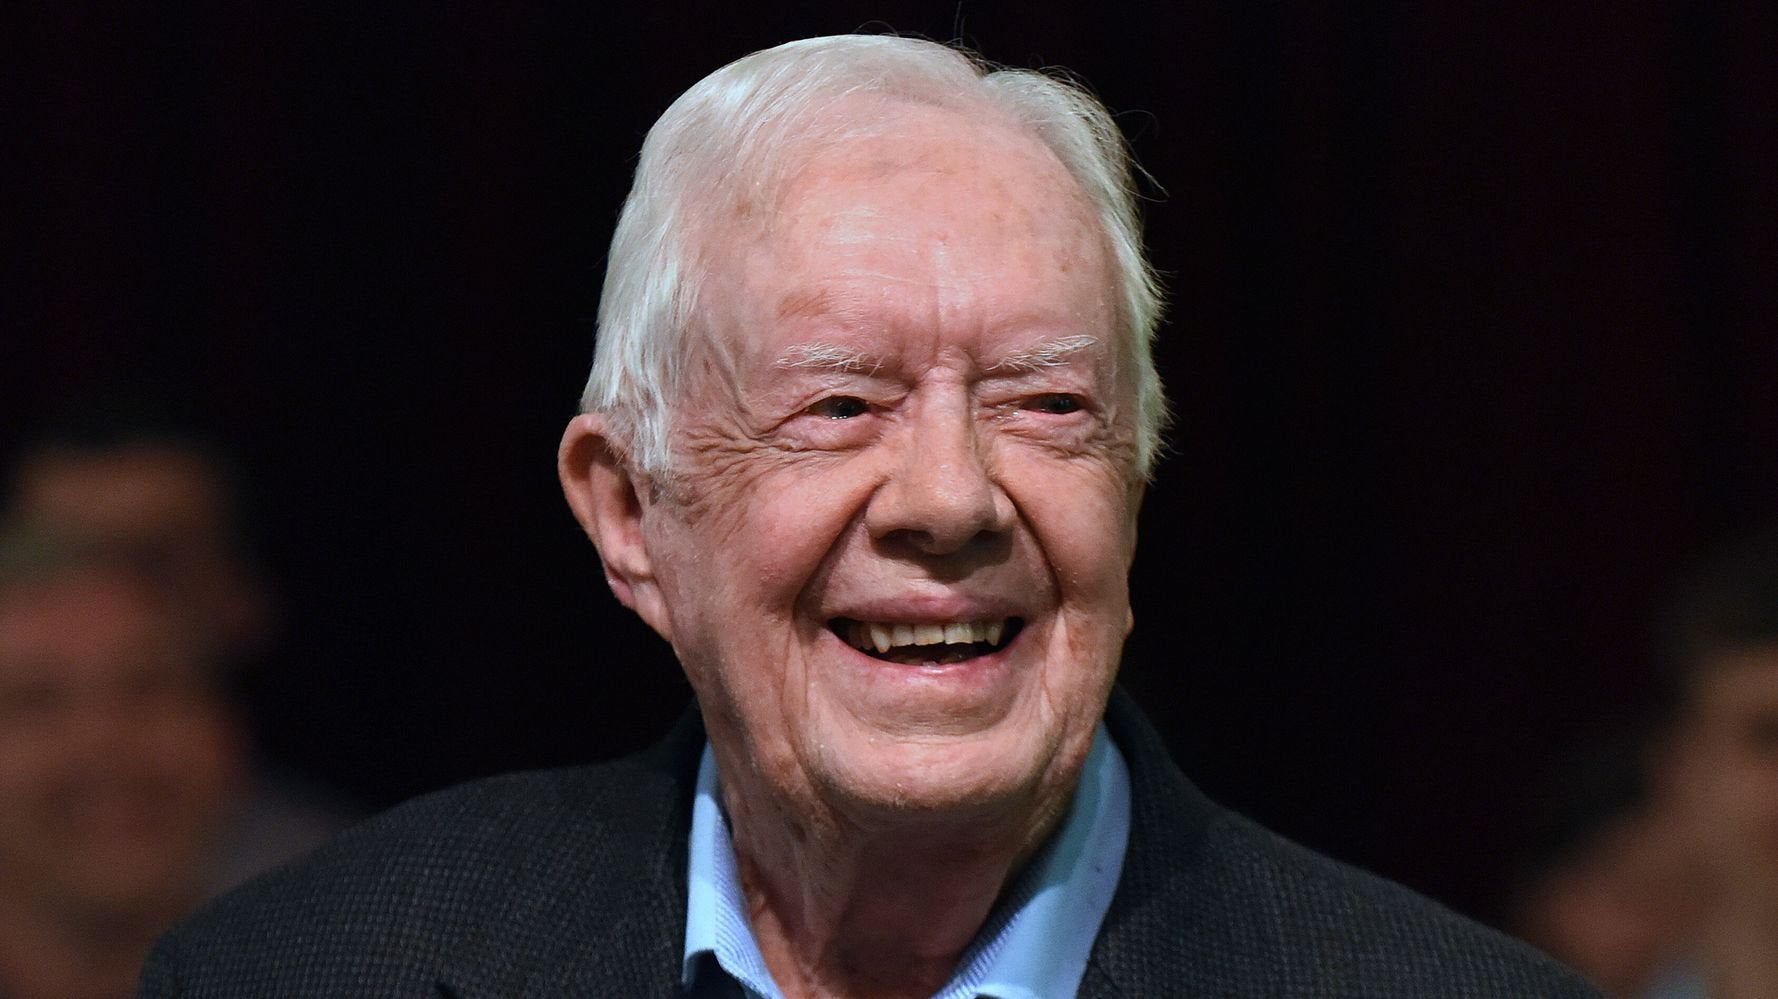 Jimmy Carter 'Fesses Up That His Son Smoked Pot With Willie Nelson On White House Roof